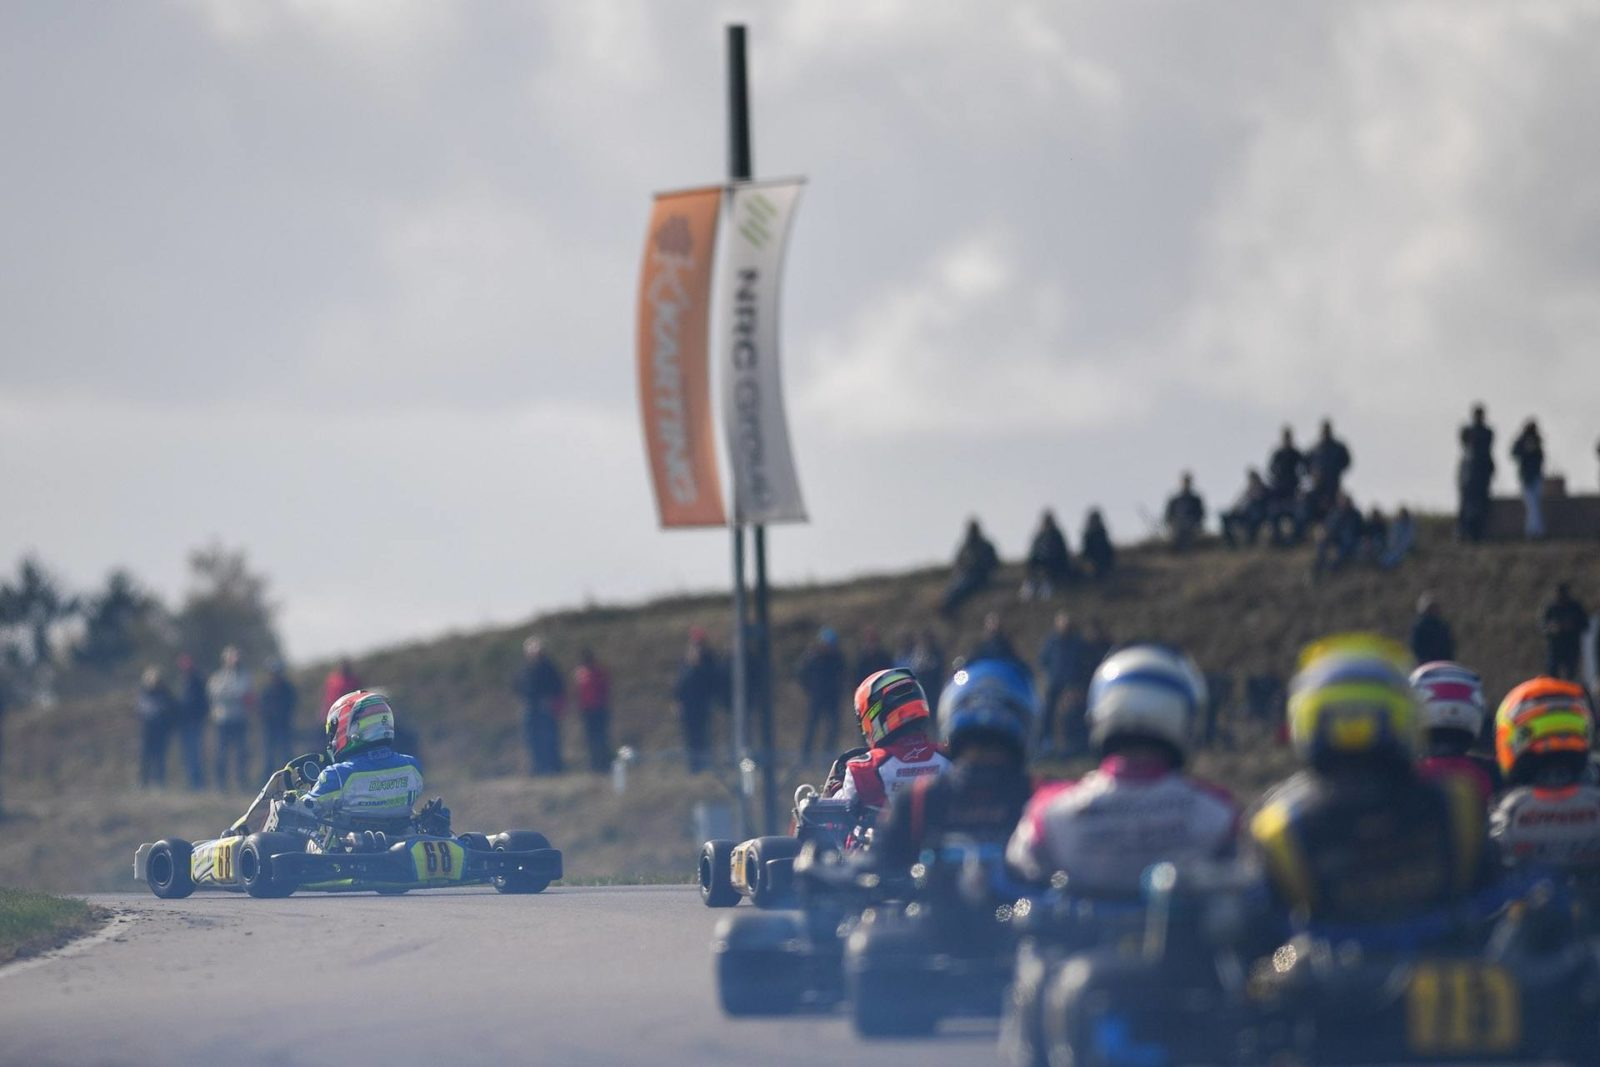 Dante Yu leads a pack of drivers at the 2018 FIA Karting World Championship